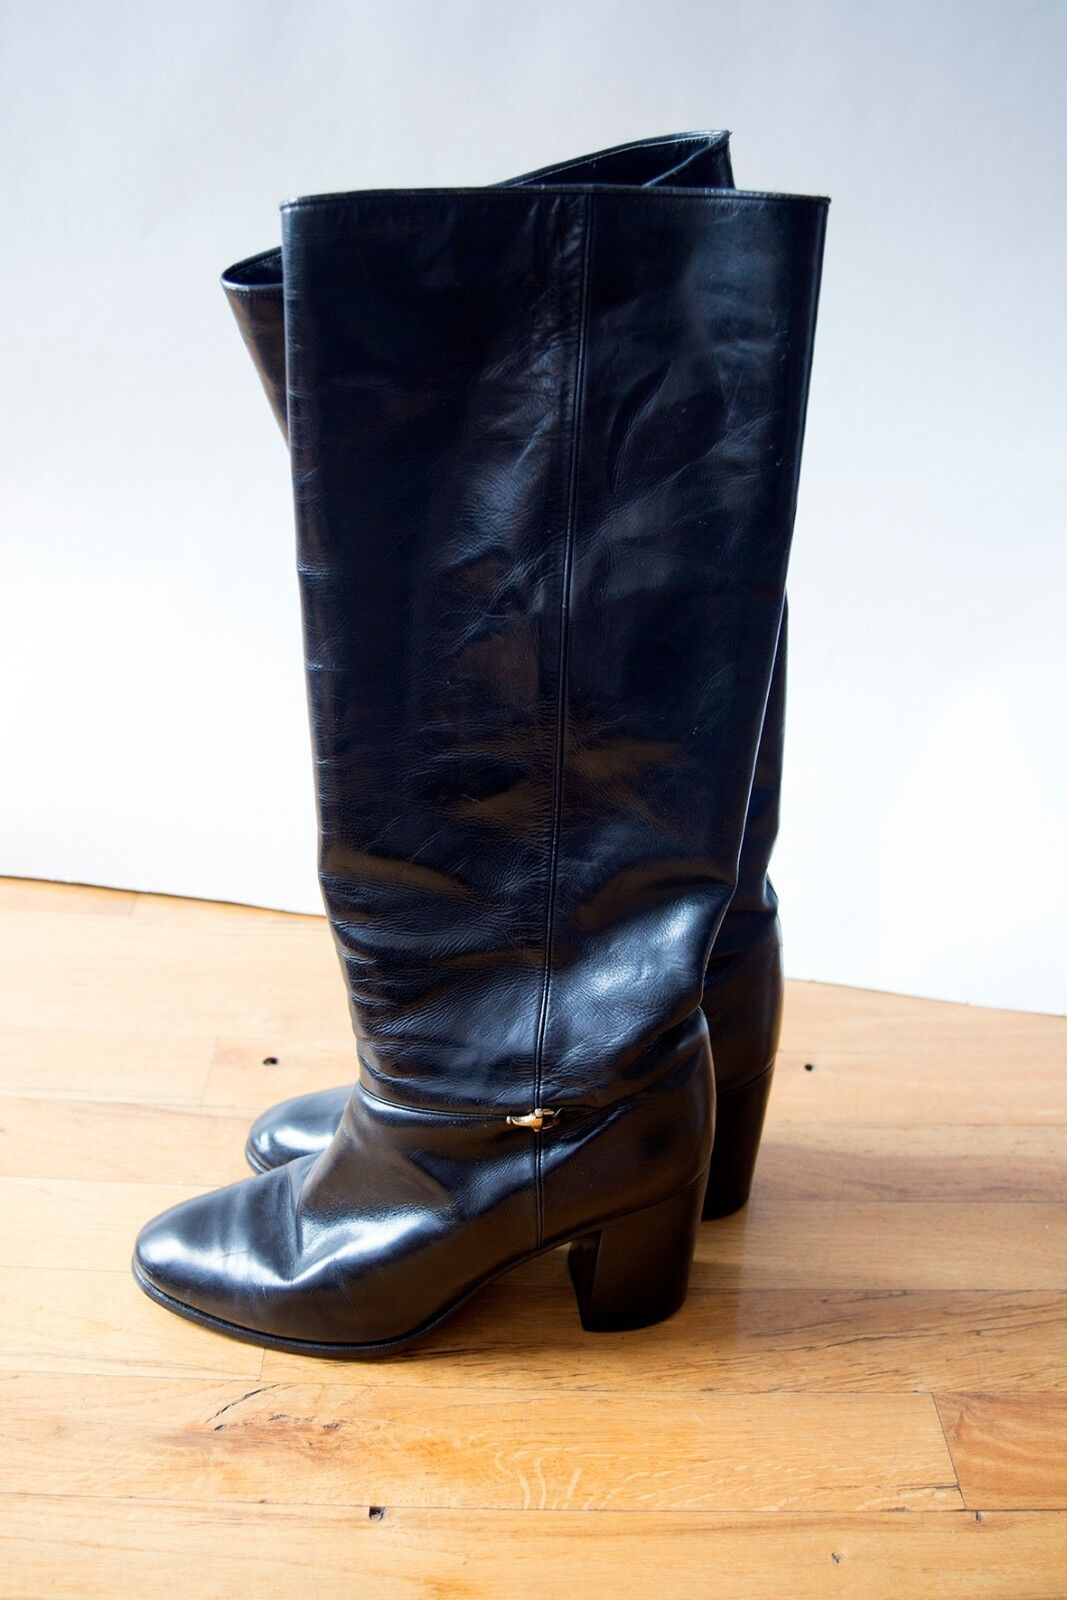 Vintage GUCCI Black Leather Knee High Riding Boots with Horsebit